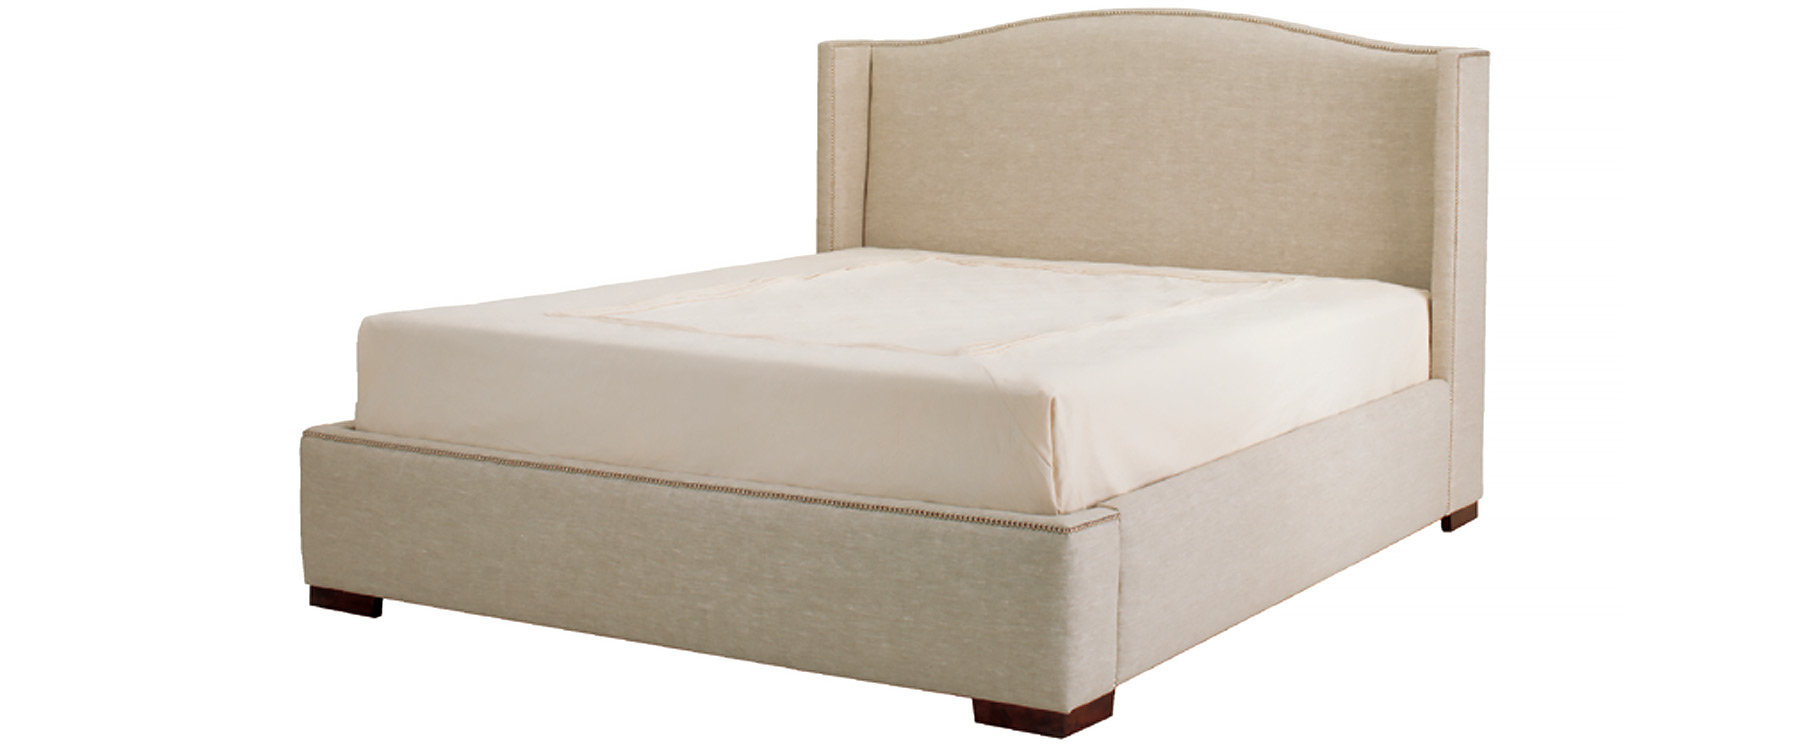 The Marissa Bed | Portland Furniture Within Marissa Sofa Chairs (View 21 of 25)